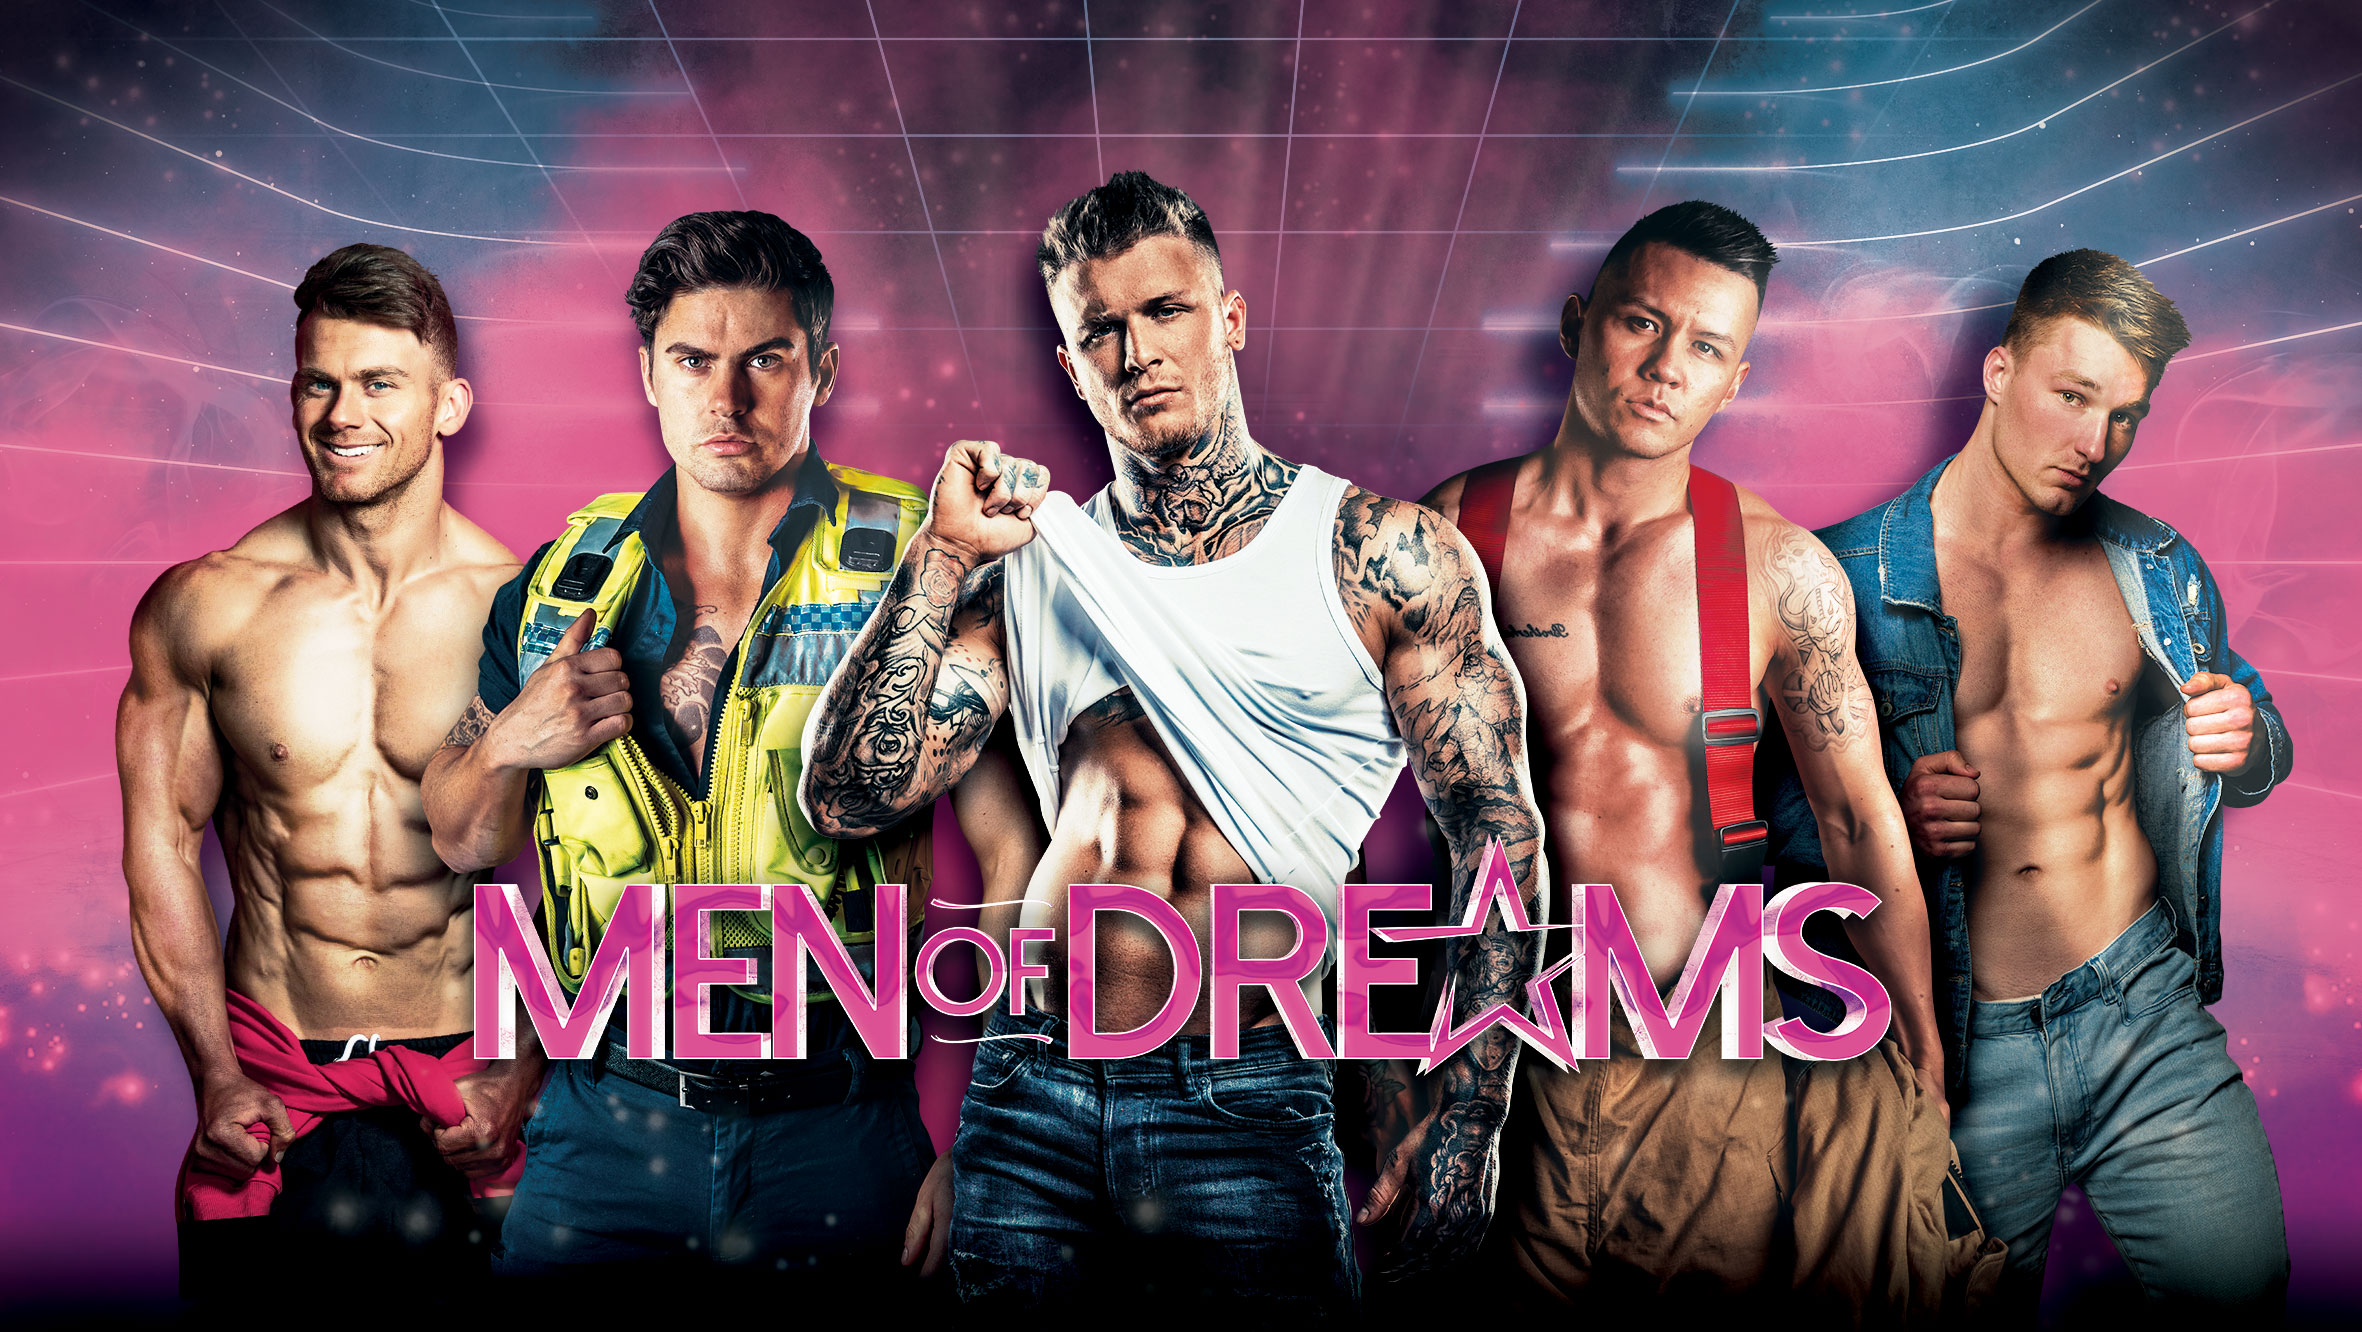 men-of-dreams-cover-image